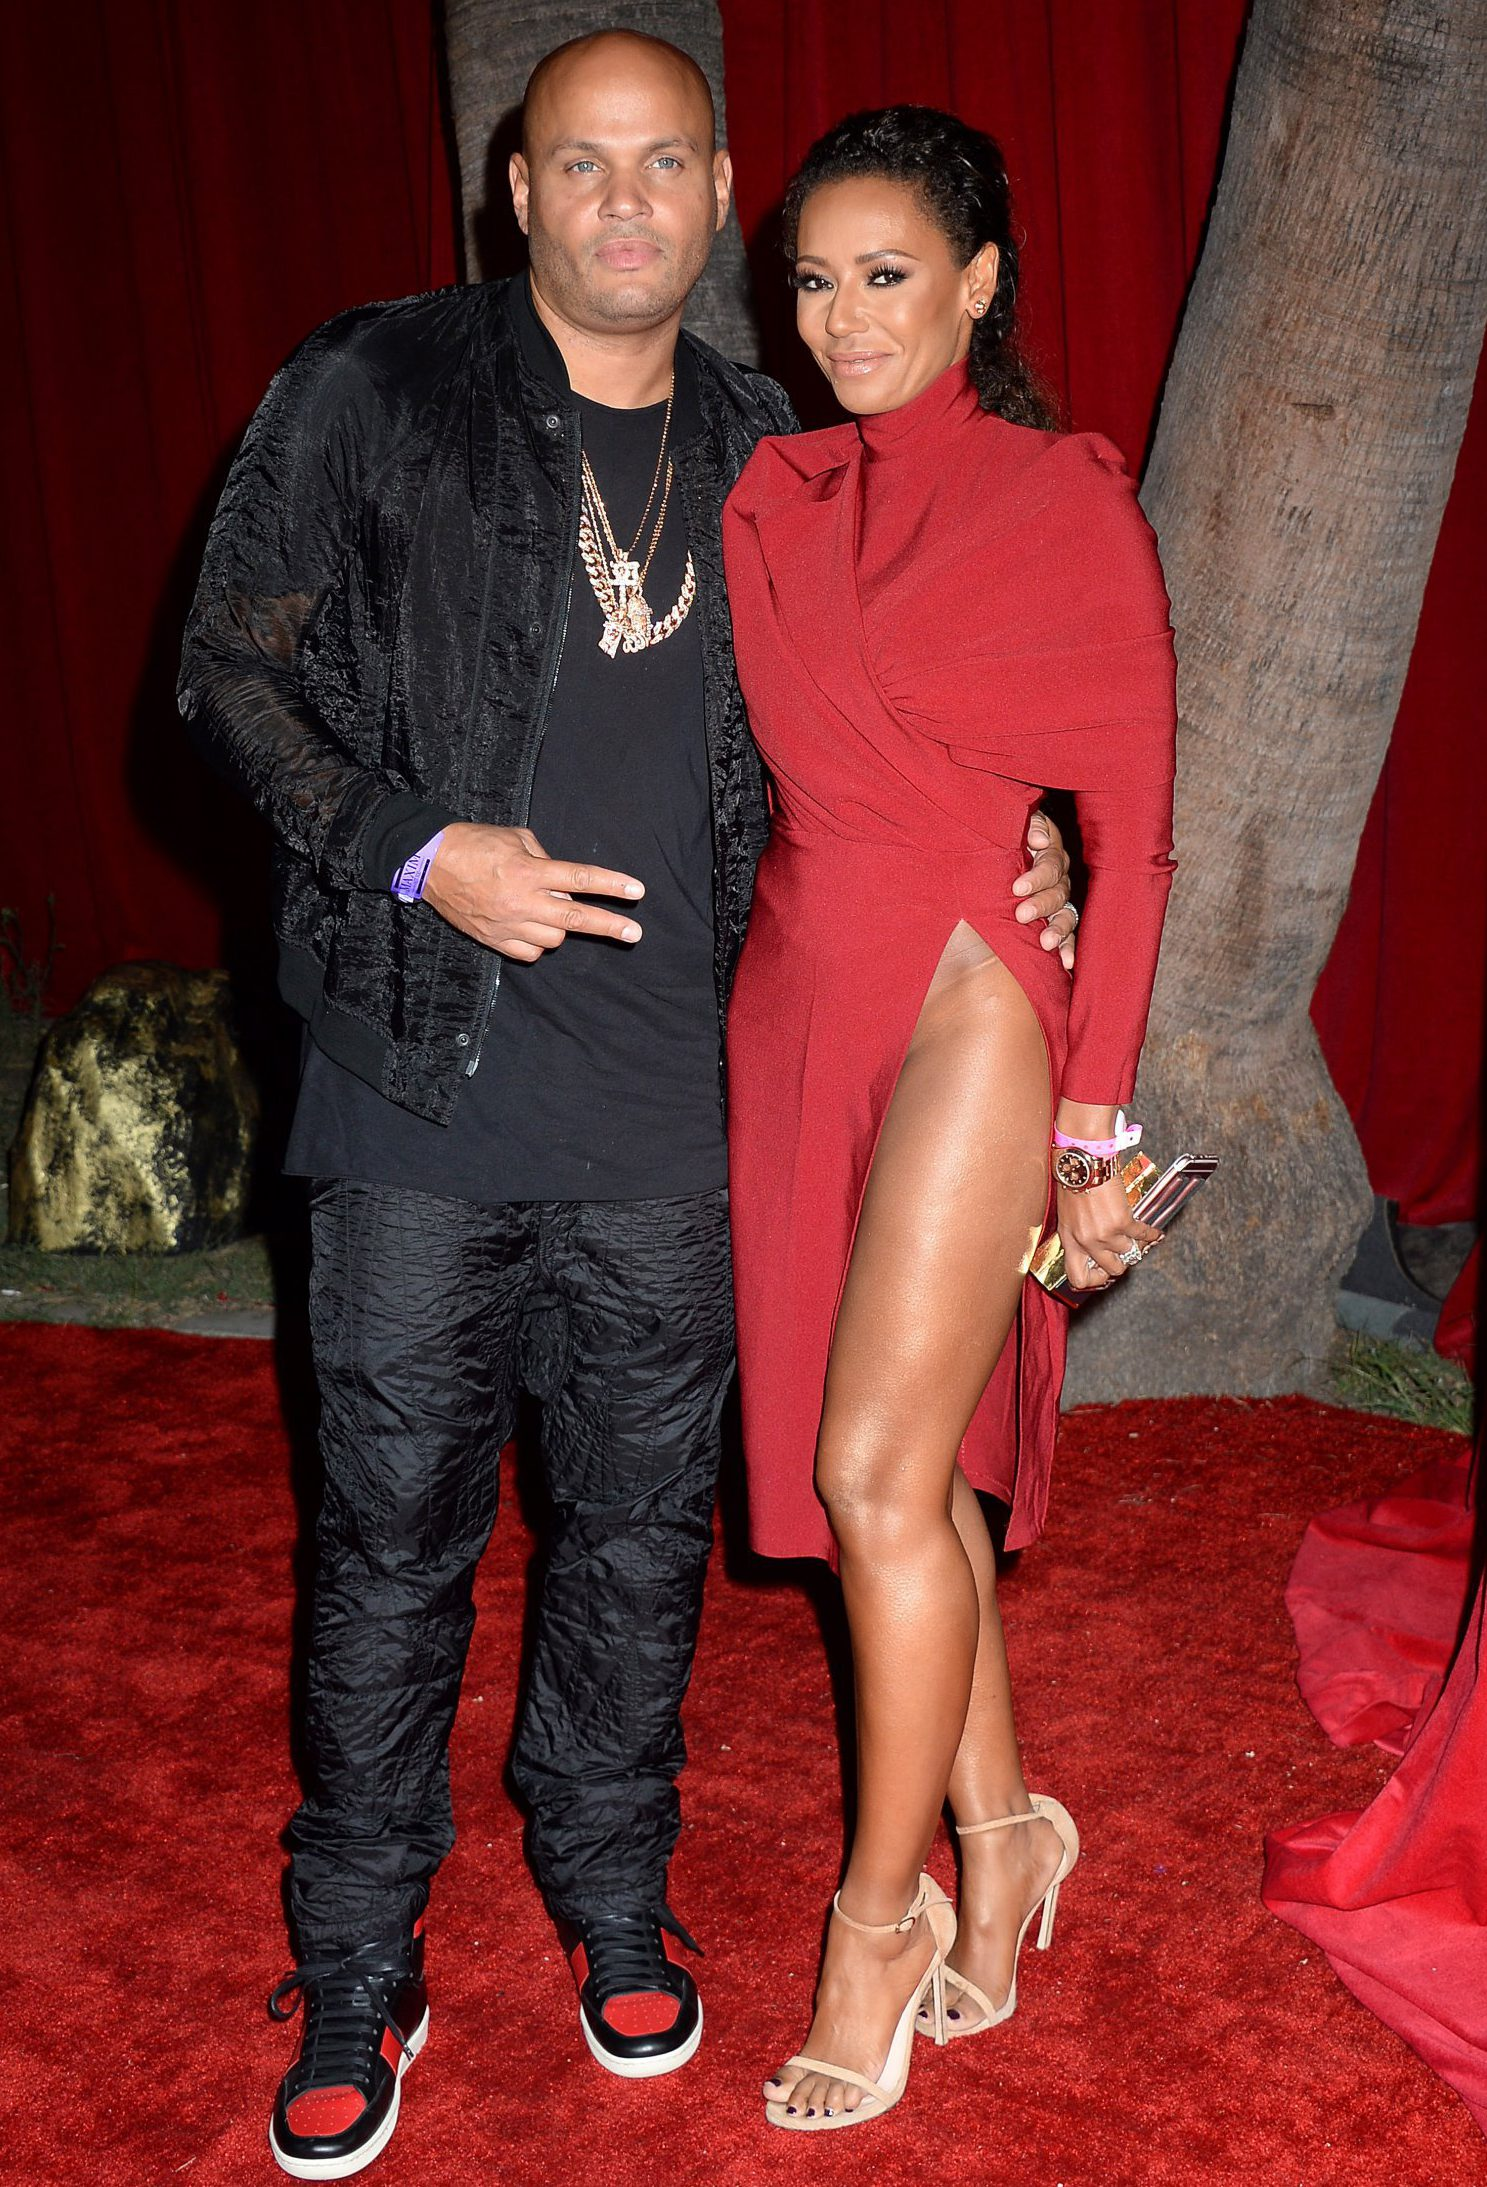 Mandatory Credit: Photo by Broadimage/REX/Shutterstock (5810064ez) Melanie Brown and husband Stephen Belafonte Maxim Hot 100 party, Los Angeles, USA - 30 Jul 2016 2016 Maxim Hot 100 party